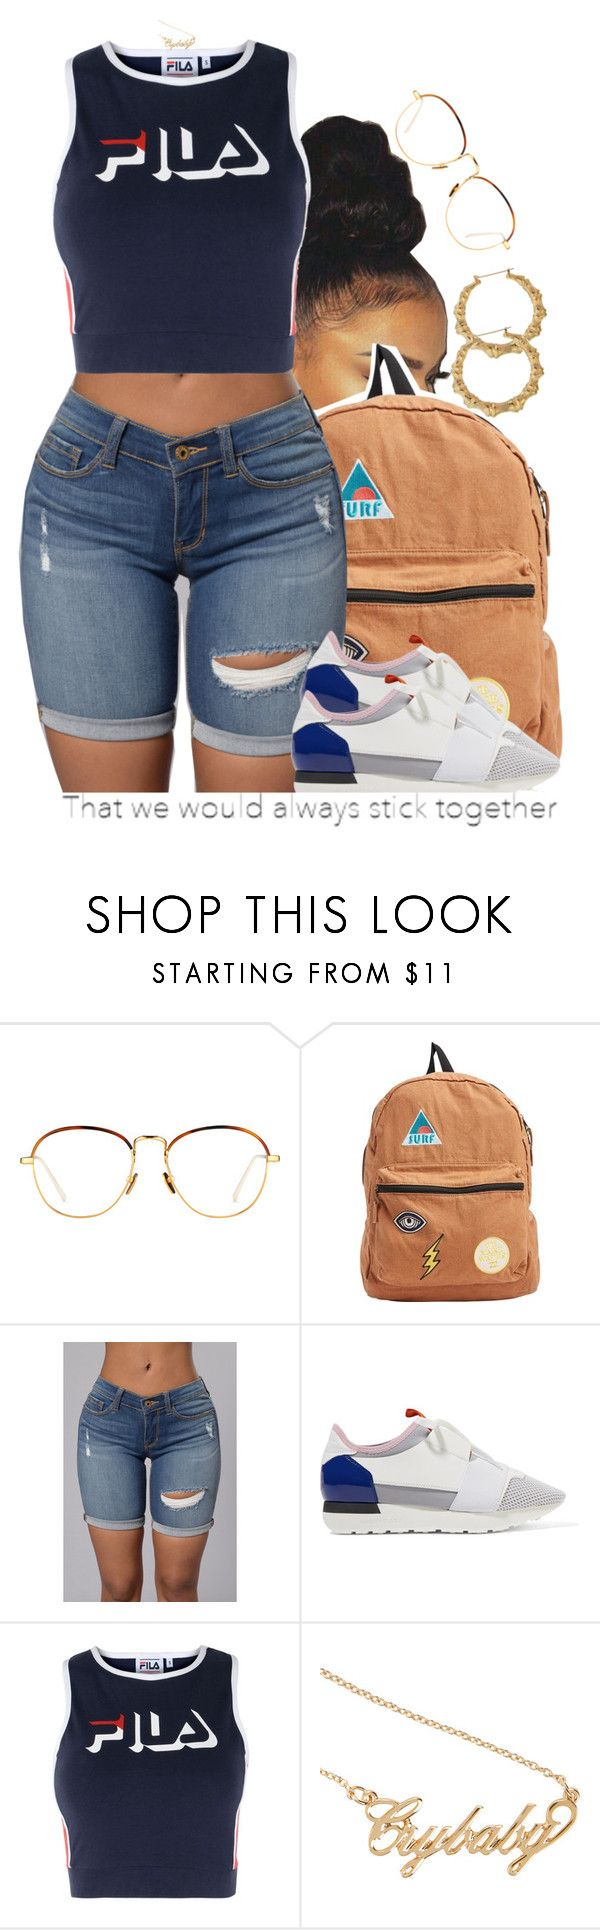 """fourth of july look."" by trinityannetrinity ❤ liked on Polyvore featuring Linda Farrow, Billabong, Balenciaga, Fila and Hot Topic"